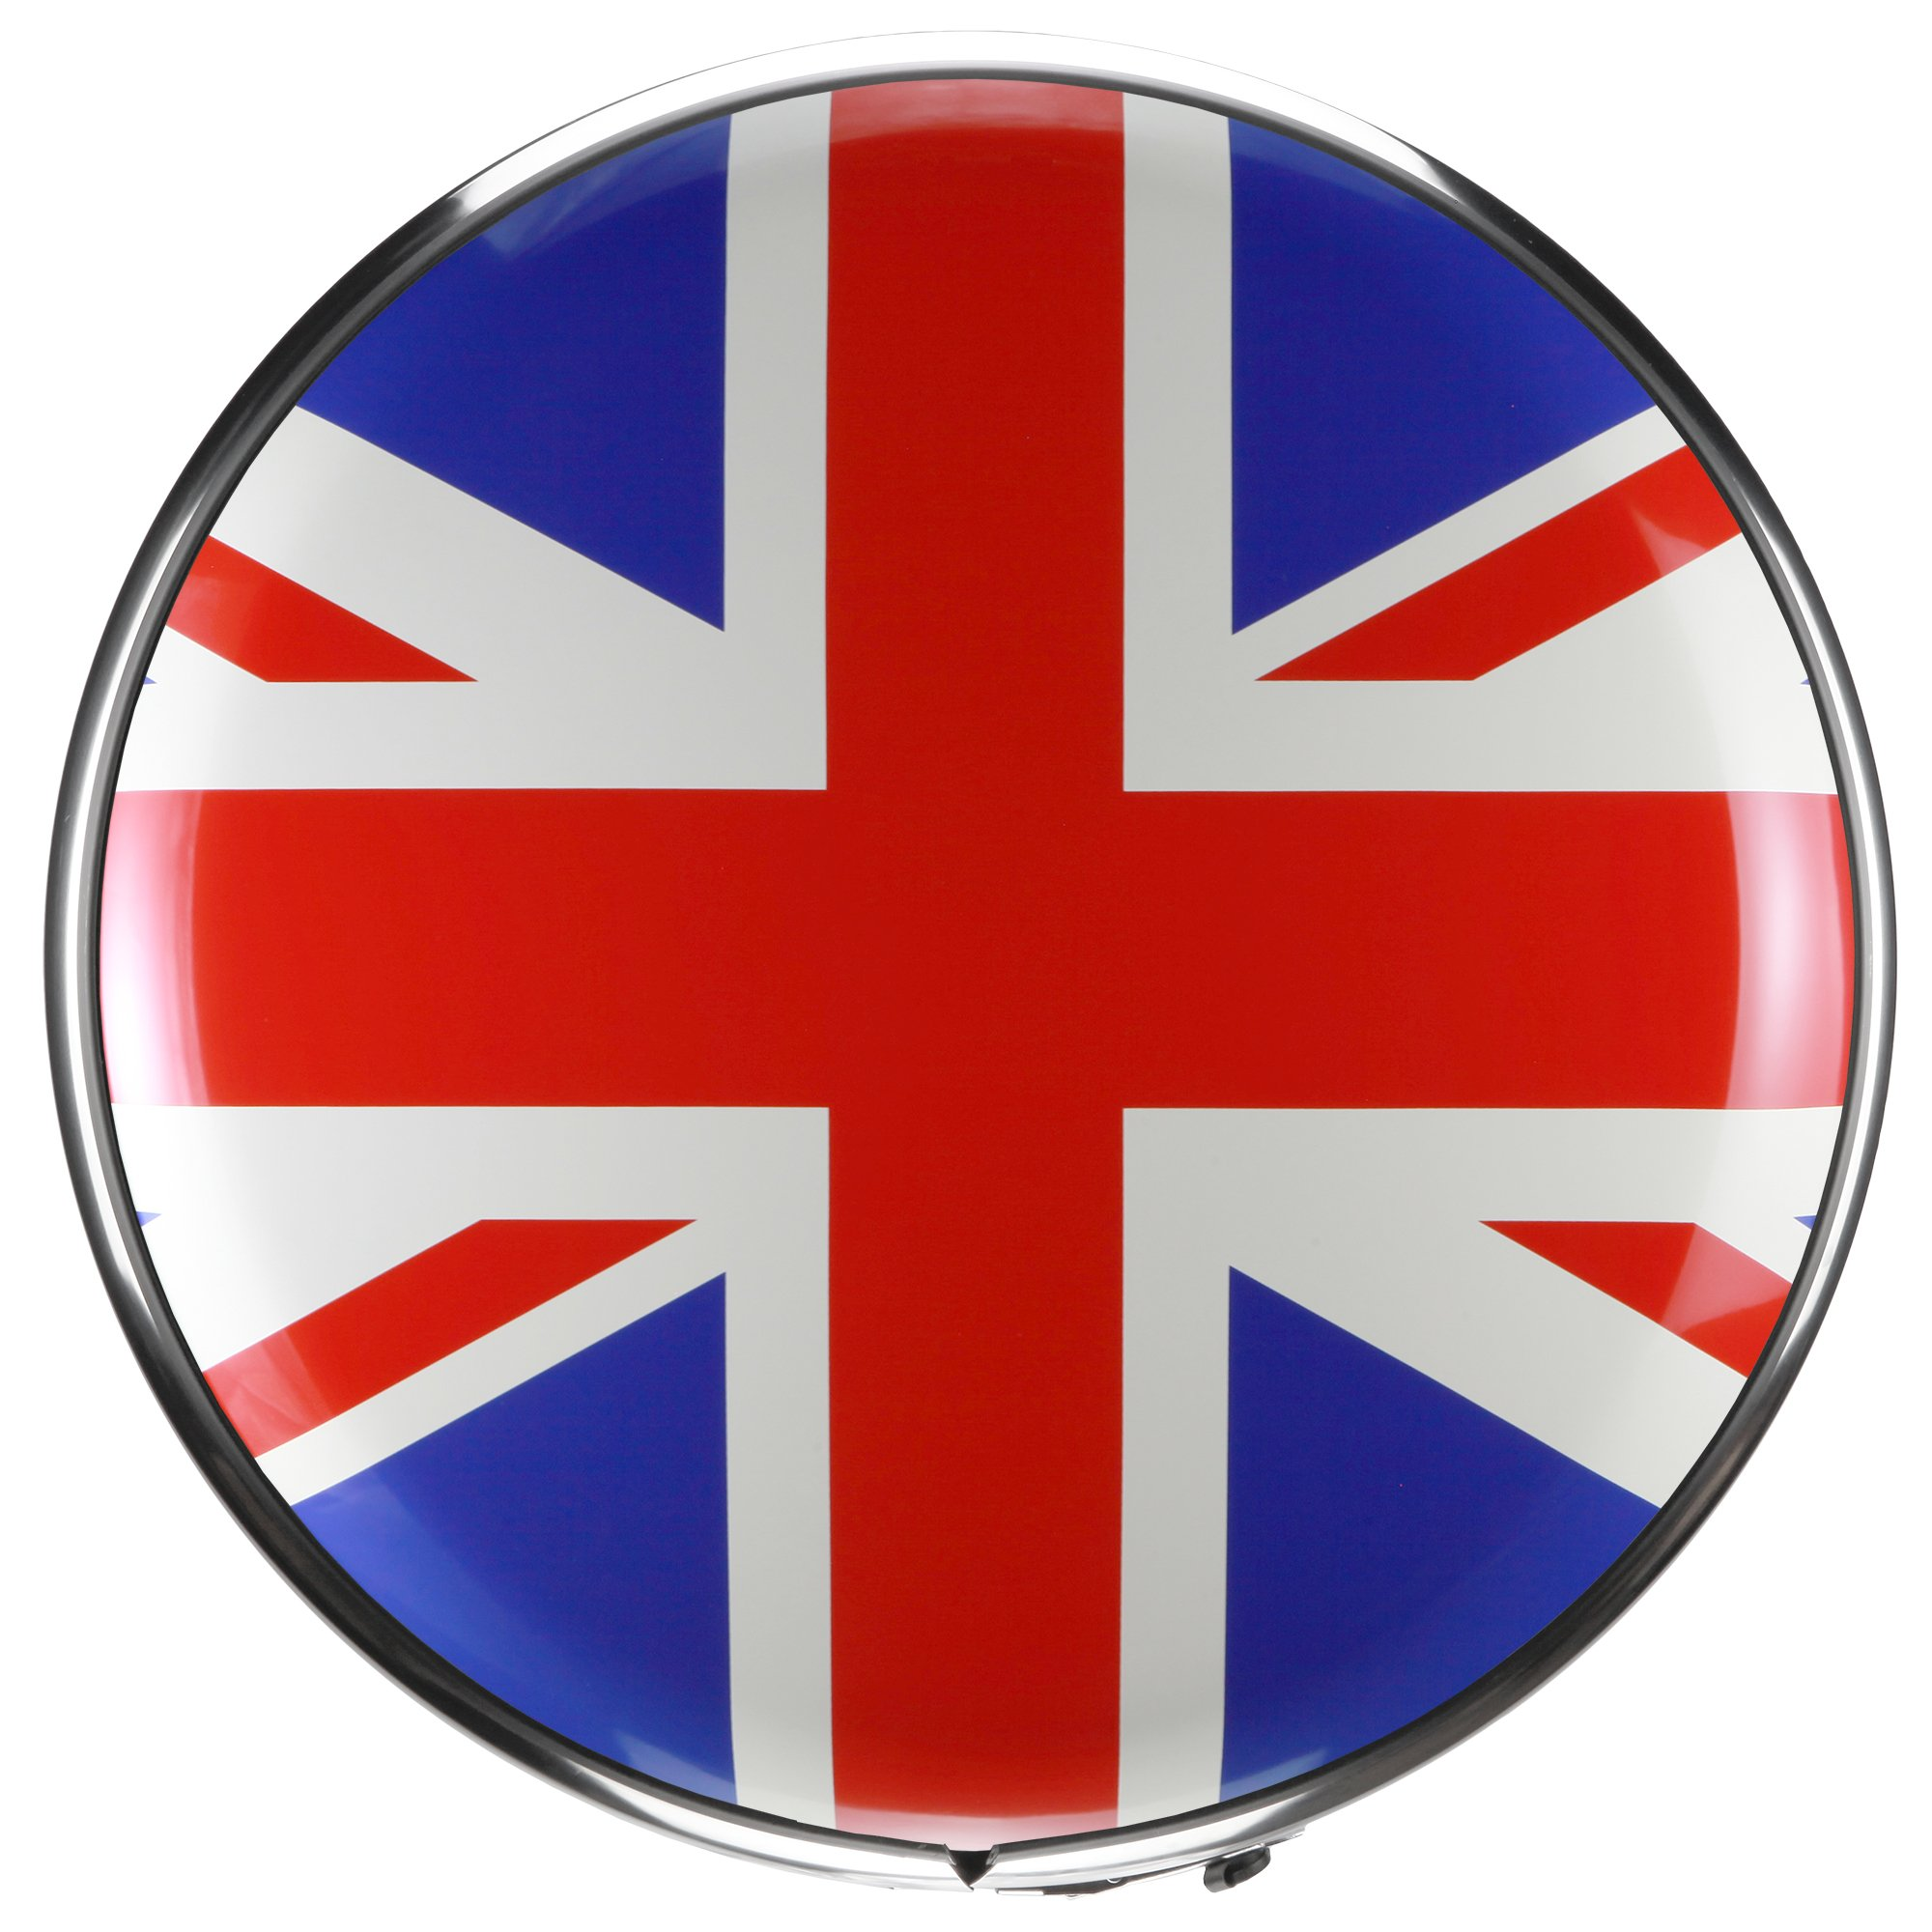 MasterSeries - Continental Tire Cover Kit (245/75R16 ) - (Molded Plastic Face & Polished Stainless Ring) - Union Jack Flag Print by Boomerang (Image #2)